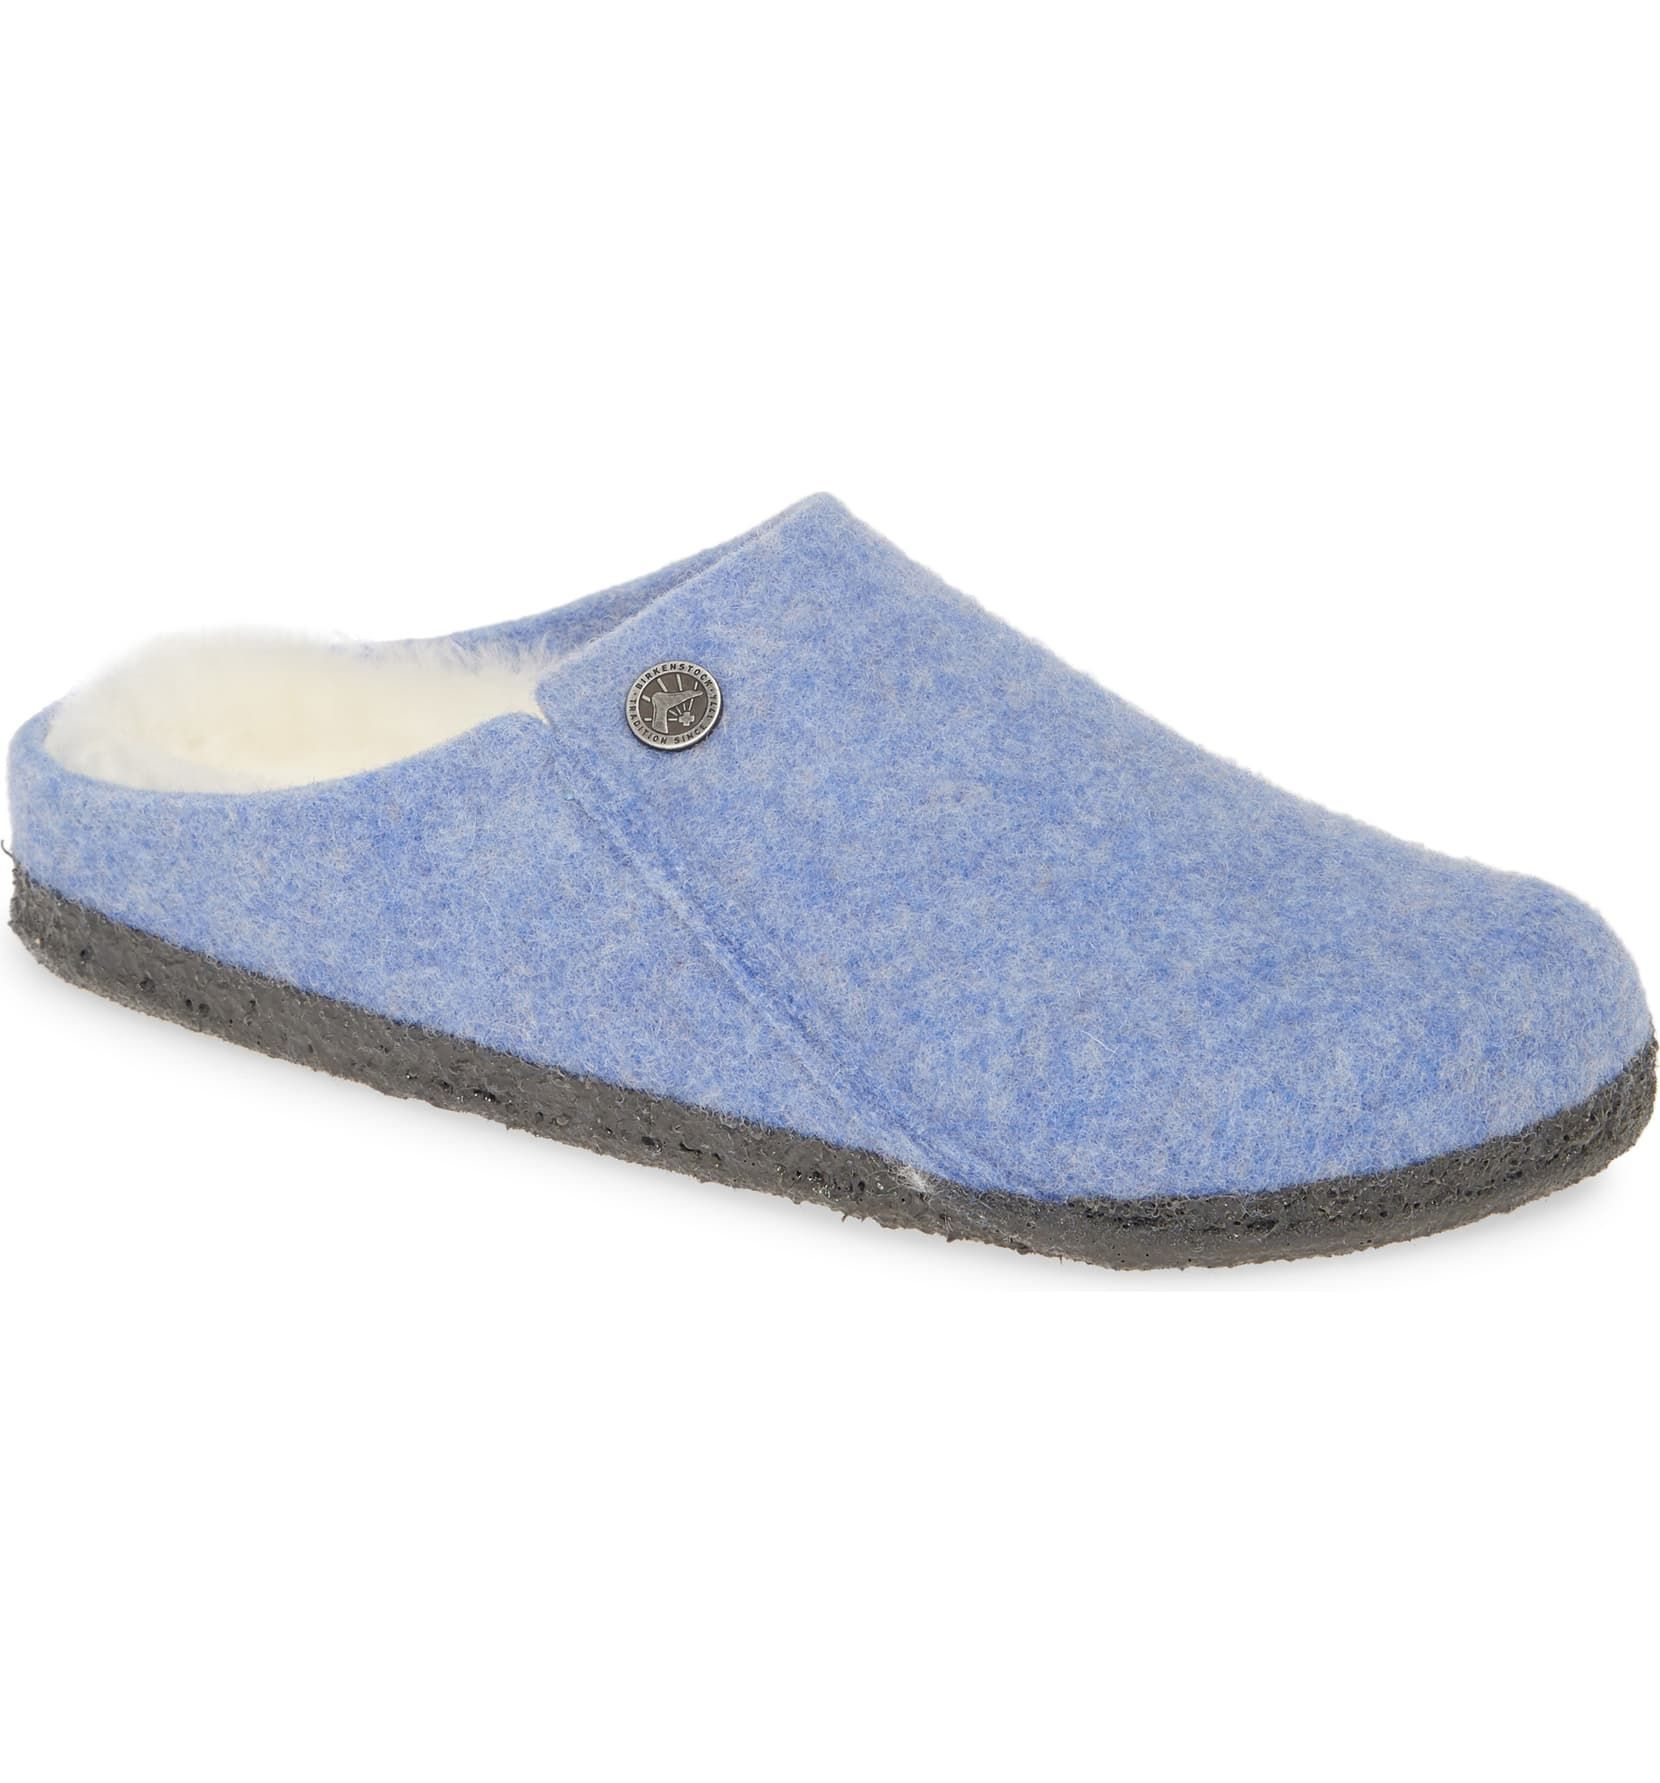 Womens Slippers Ladies Casual Wool Slipper Indoor Slip Warm Colour Matching Slippers Stripe Pattern Patchwork Super Soft Plush Home Slippers